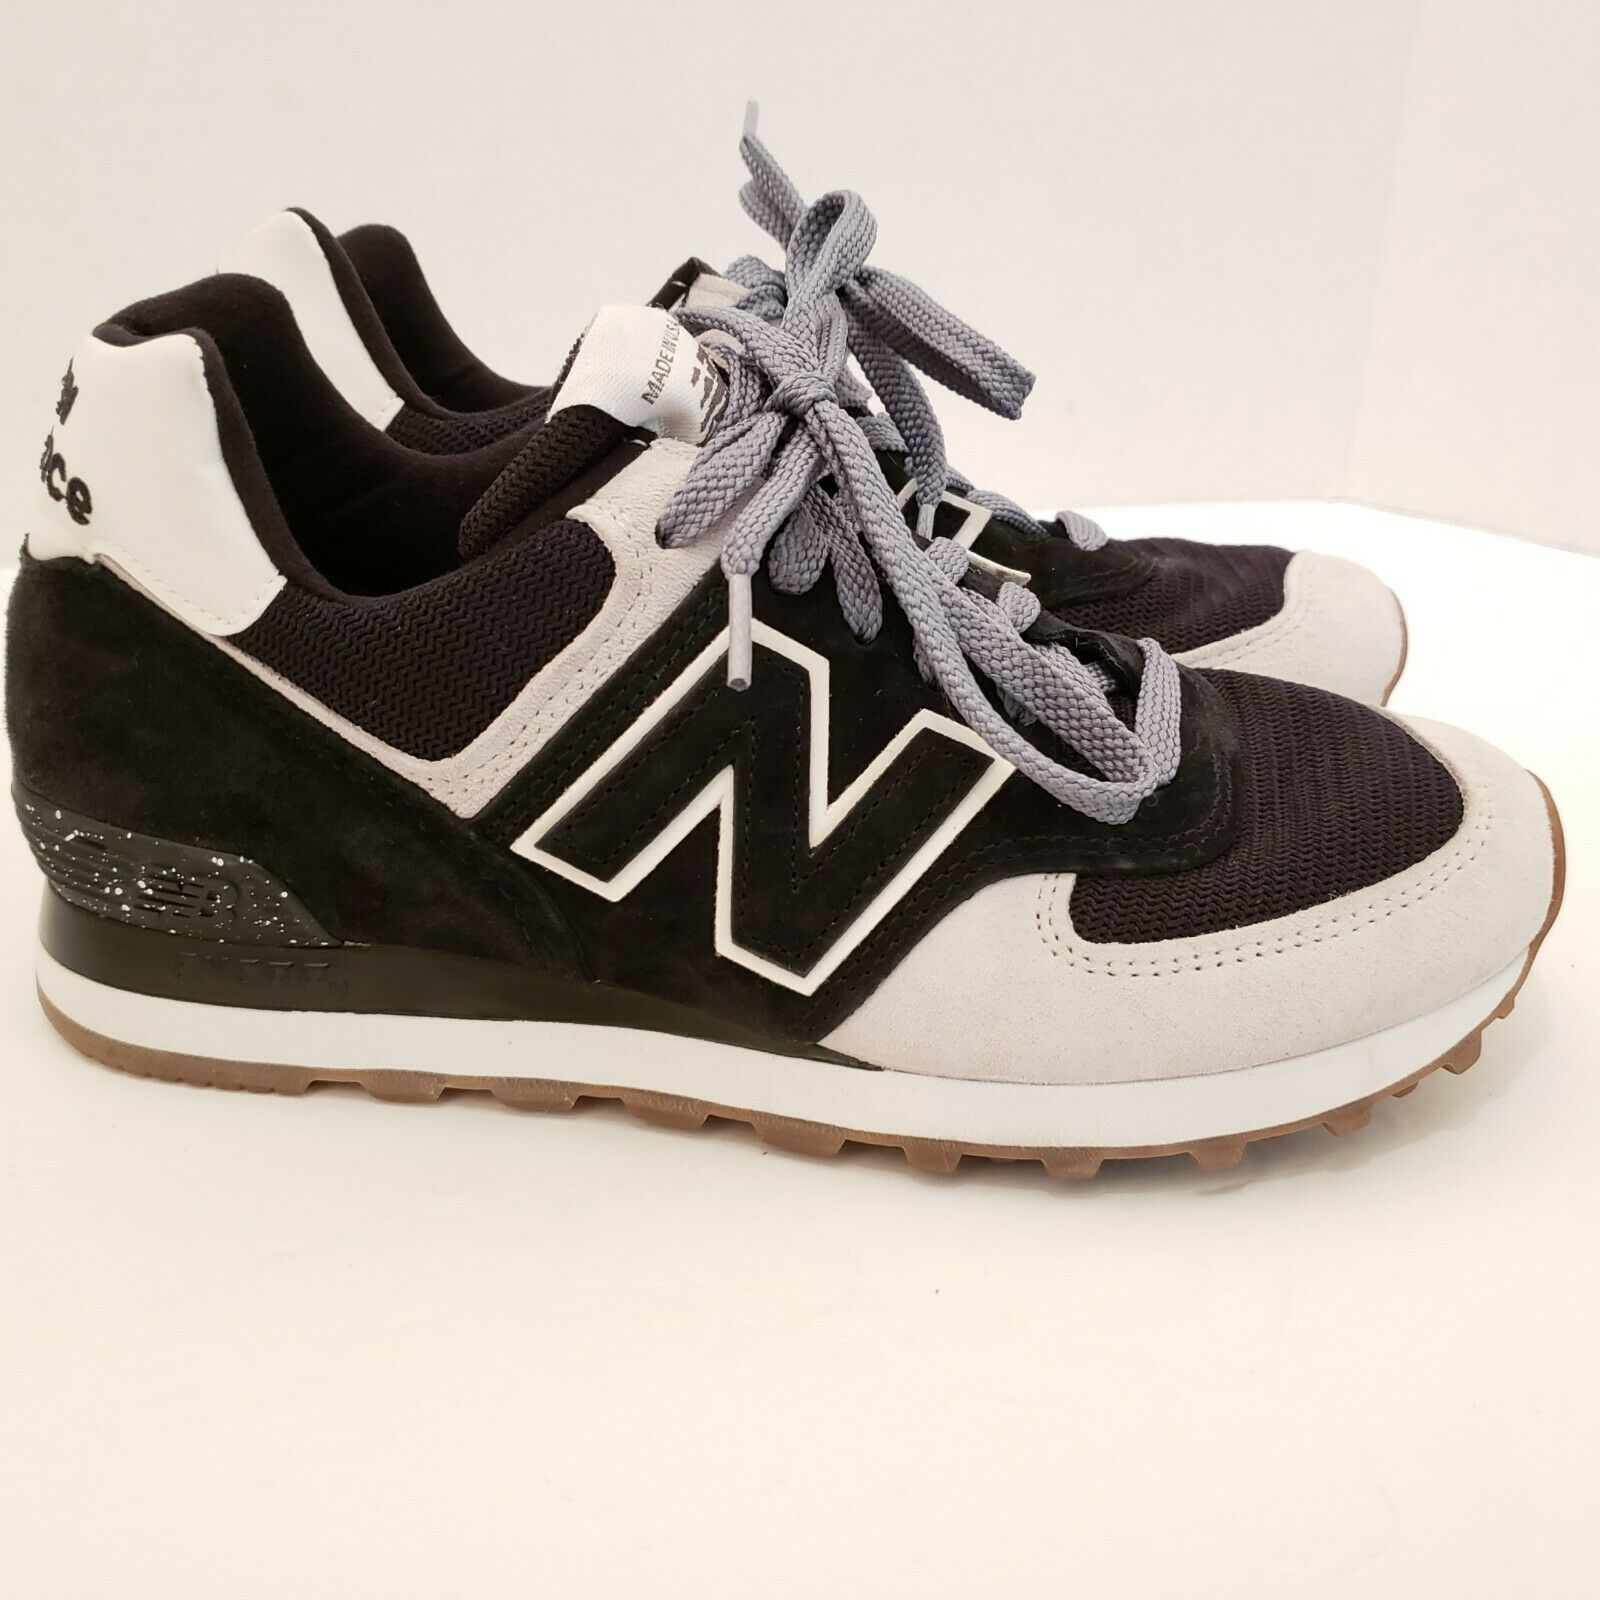 New Balance Men's Size 7 Black and White Running Sneakers USA Made Classic Shoe